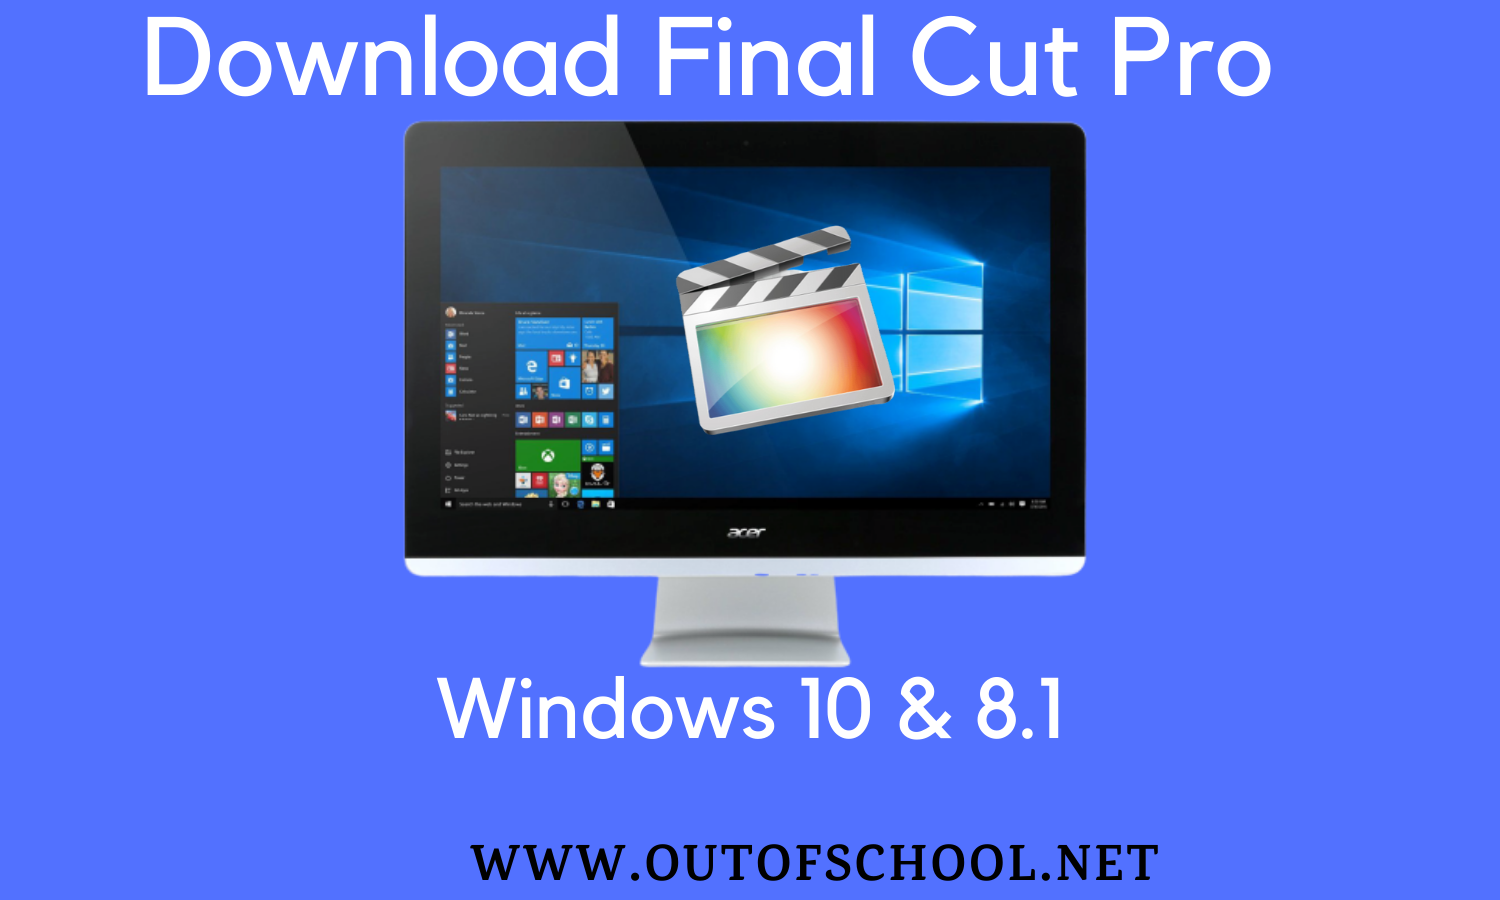 download-final-cut-pro-for-windows